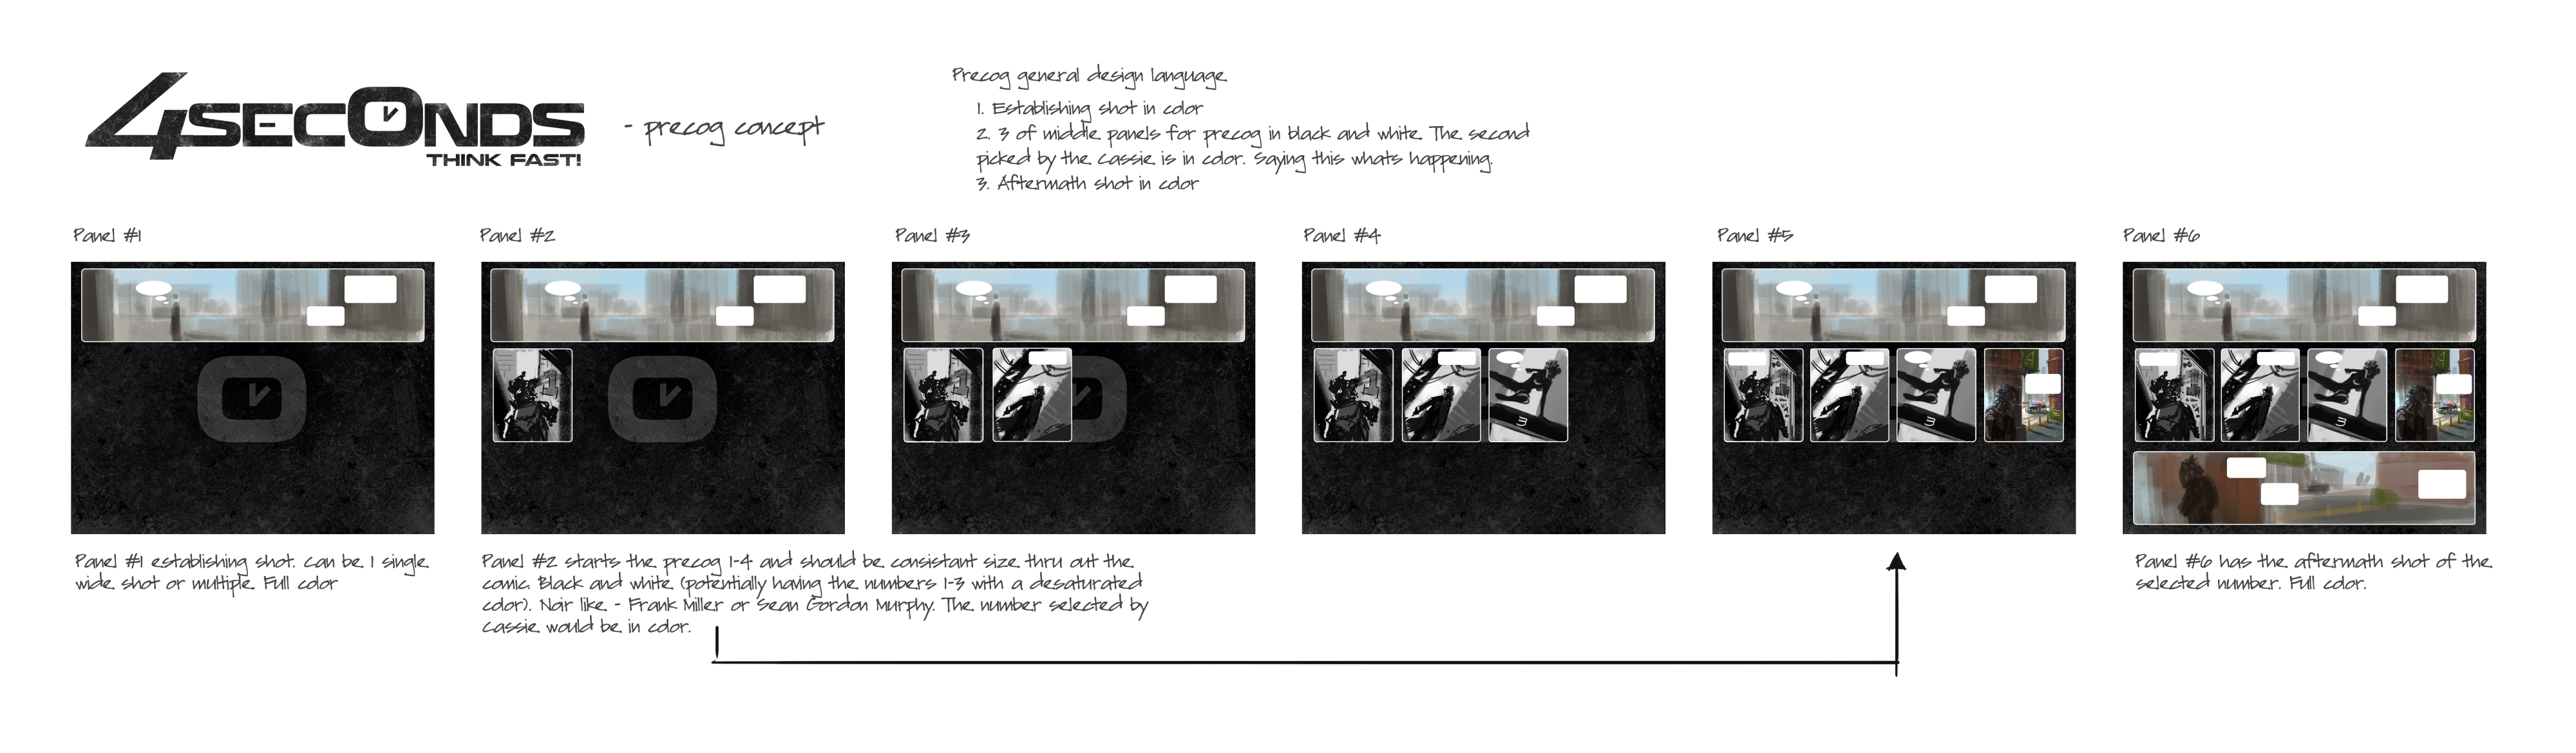 4 seconds billy king precog scene layout